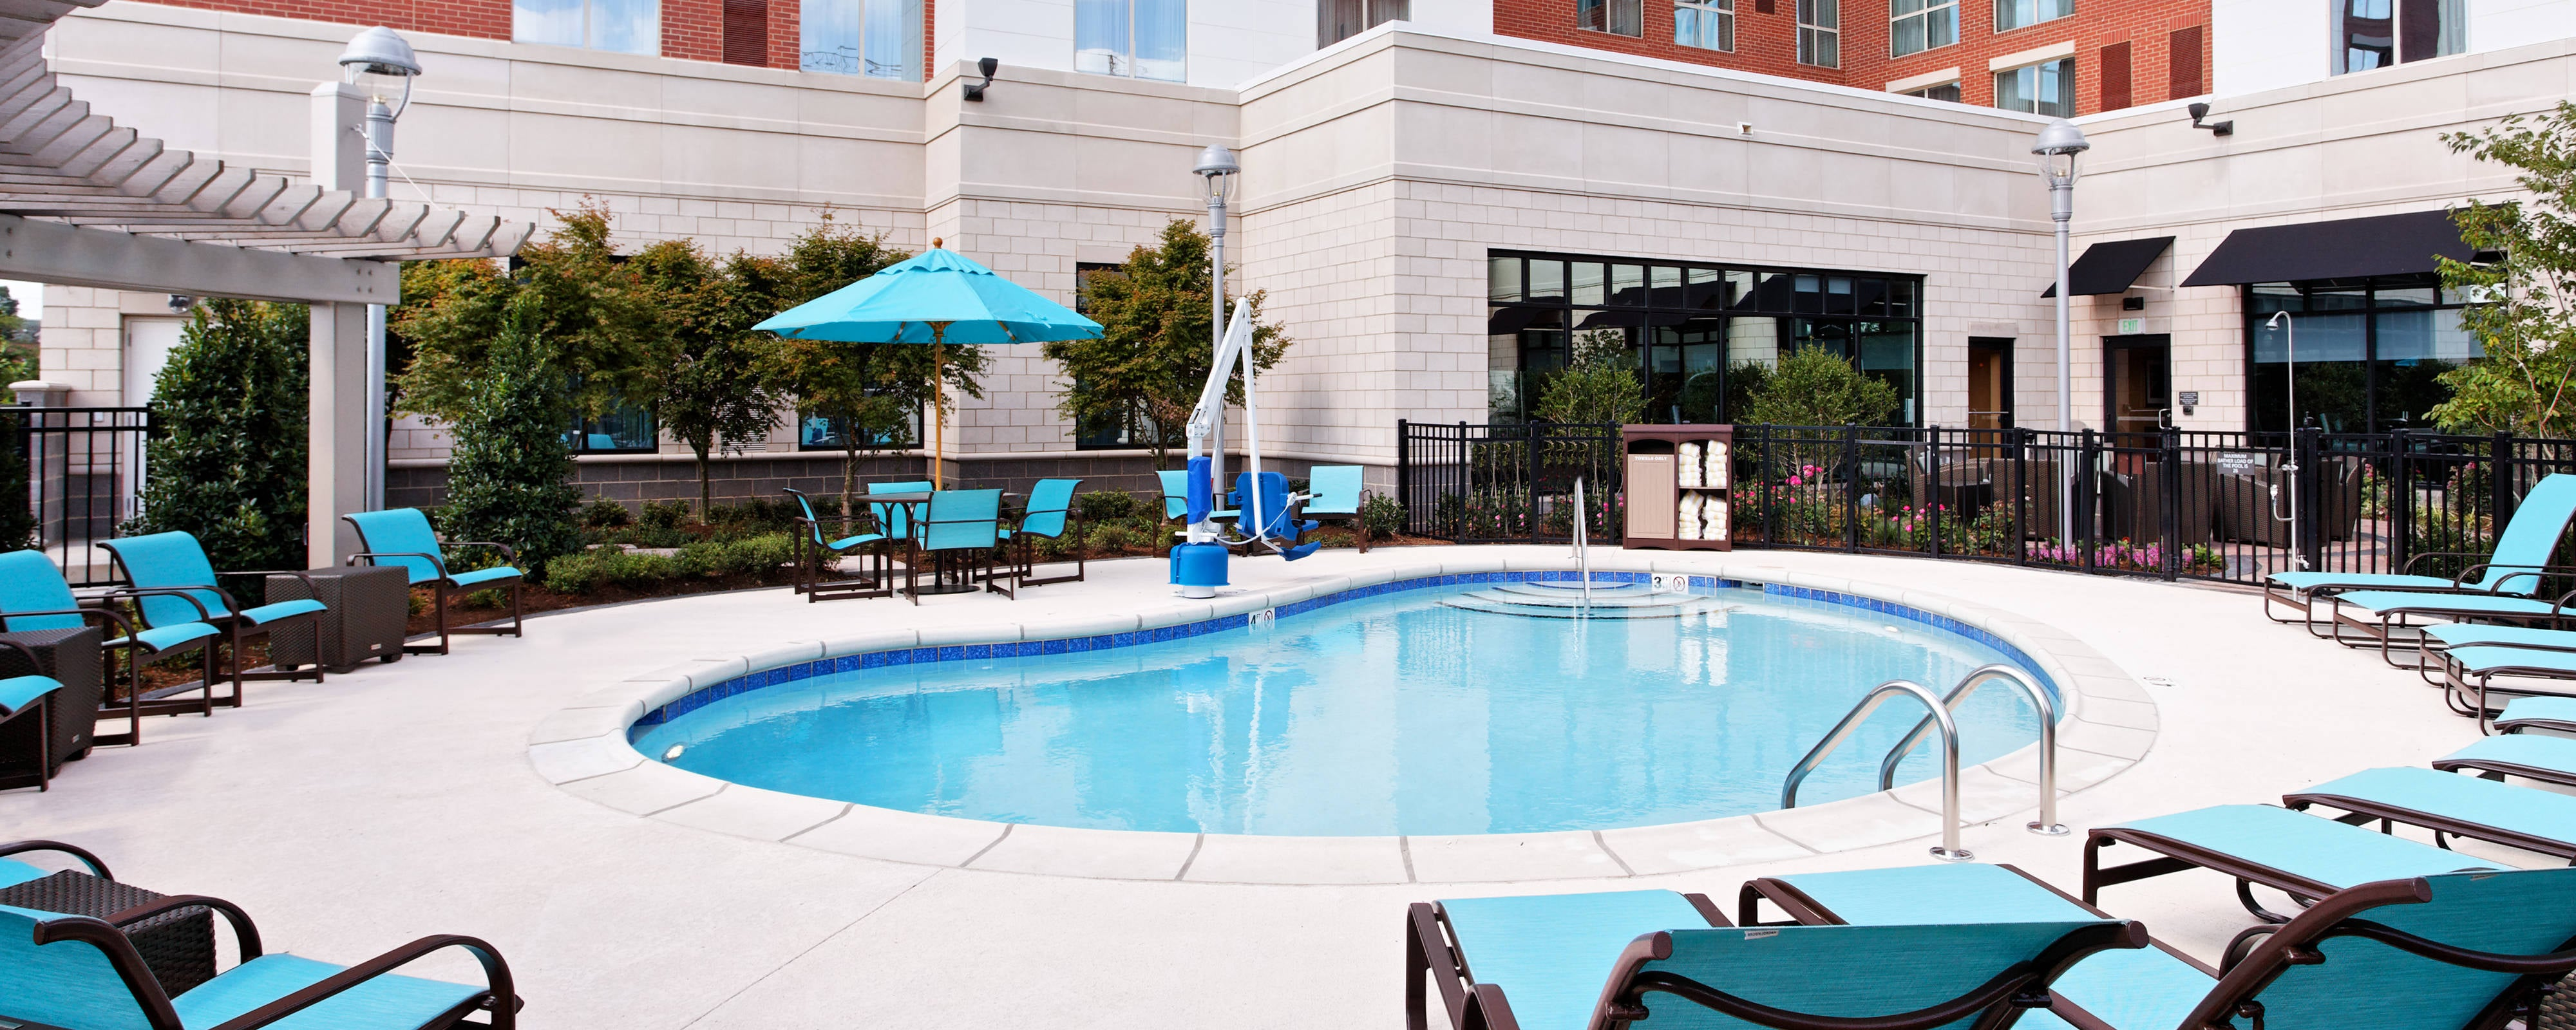 piscina del hotel en little rock